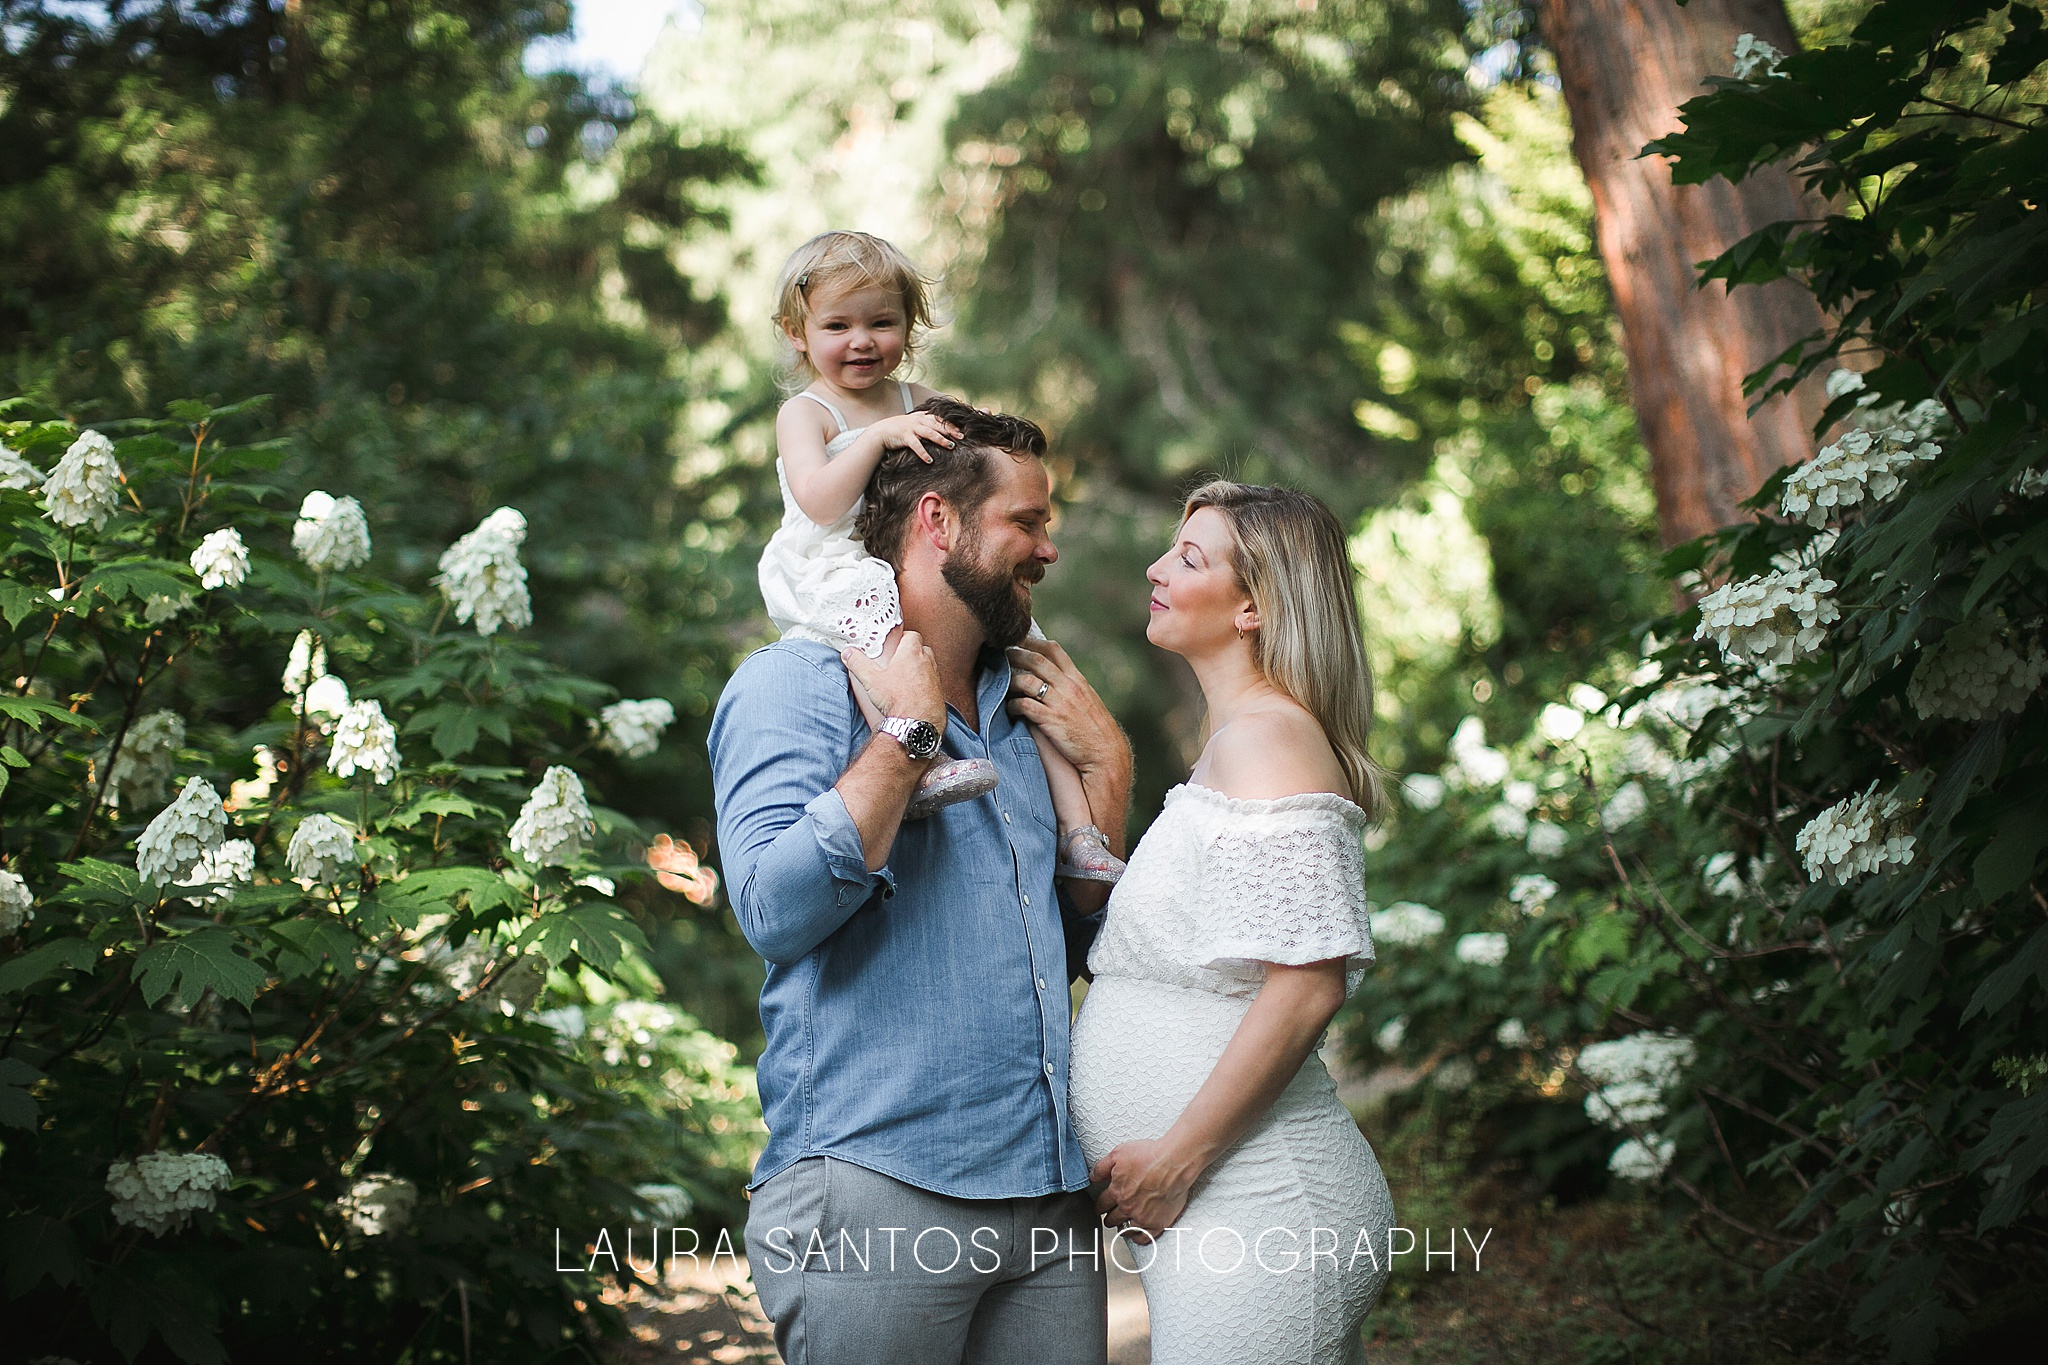 Laura Santos Photography Portland Oregon Family Photographer_1066.jpg